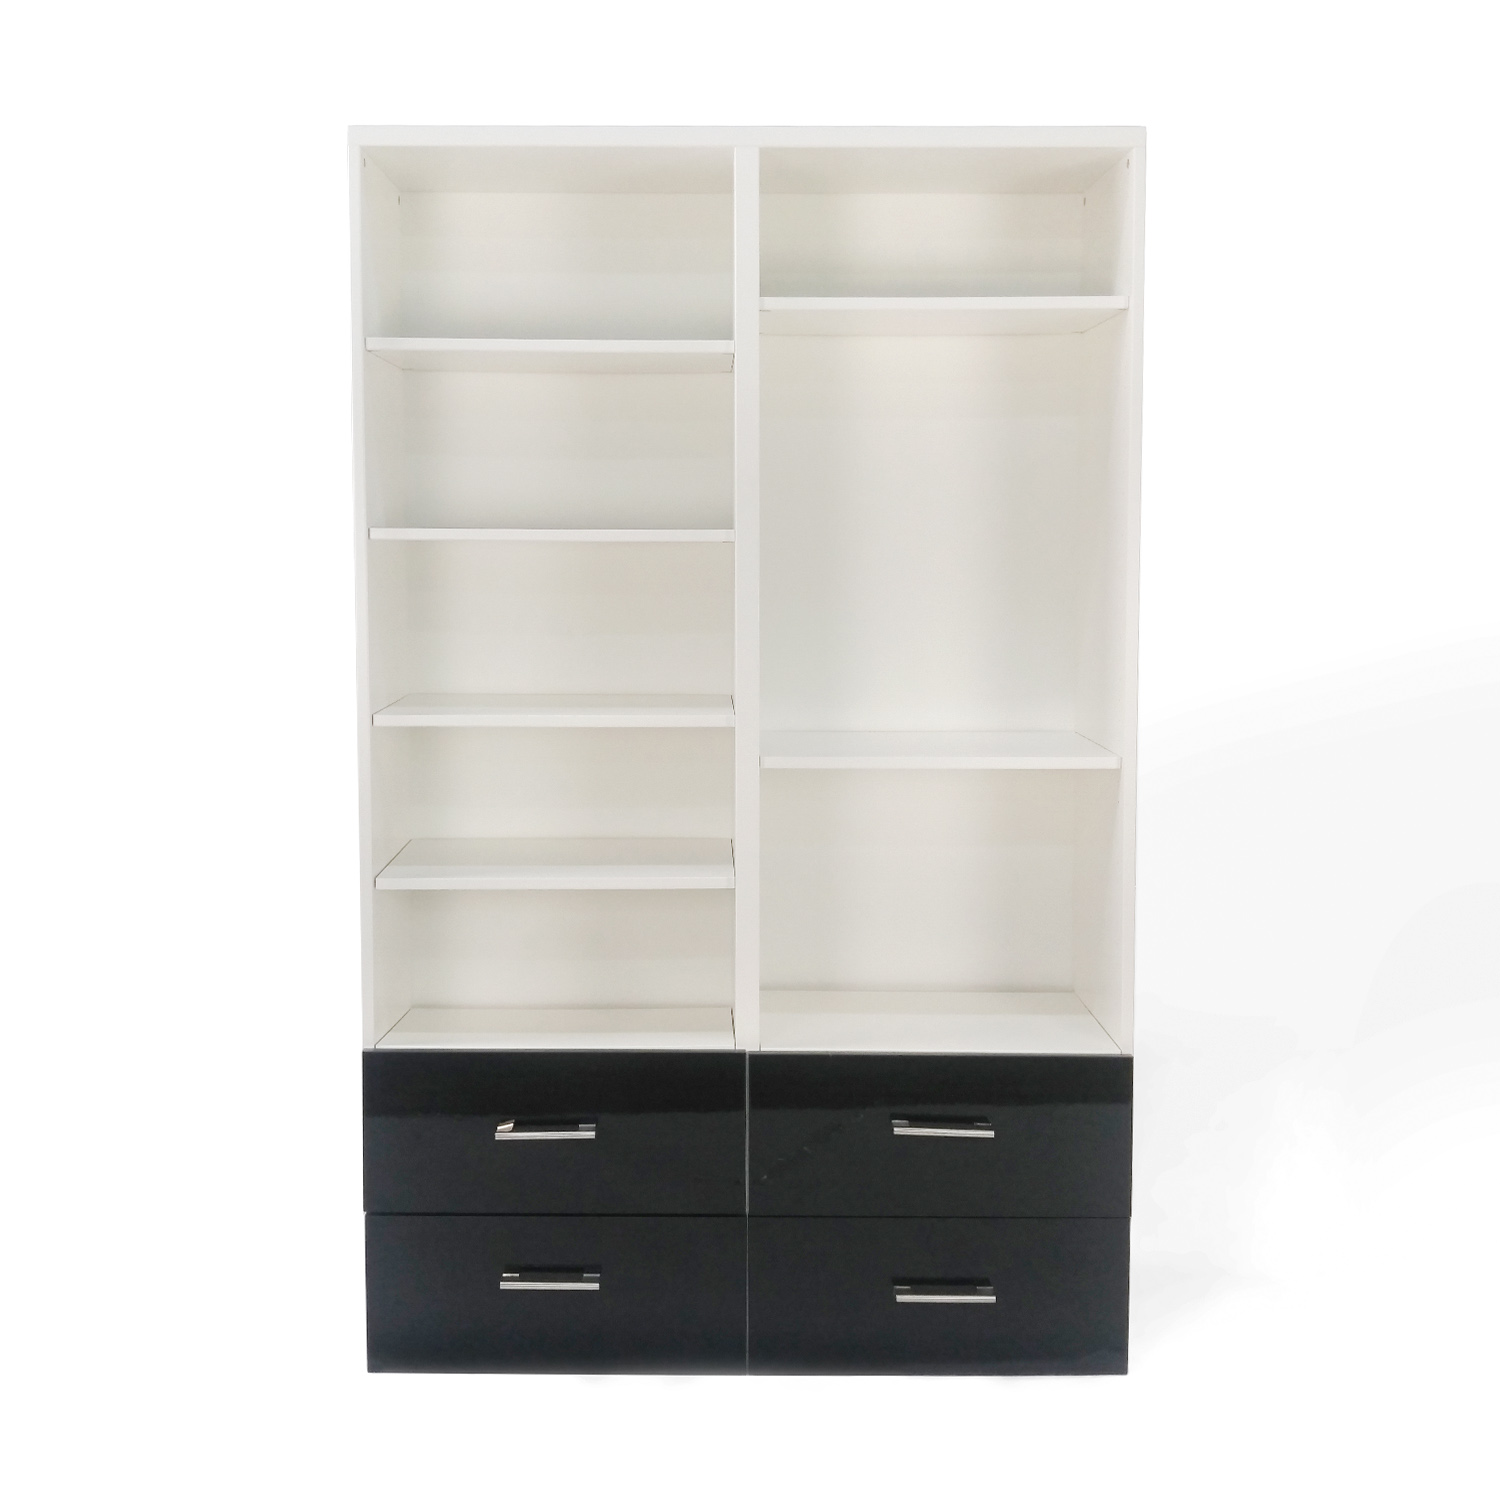 IKEA IKEA Double Shelf and Drawer Set dimensions